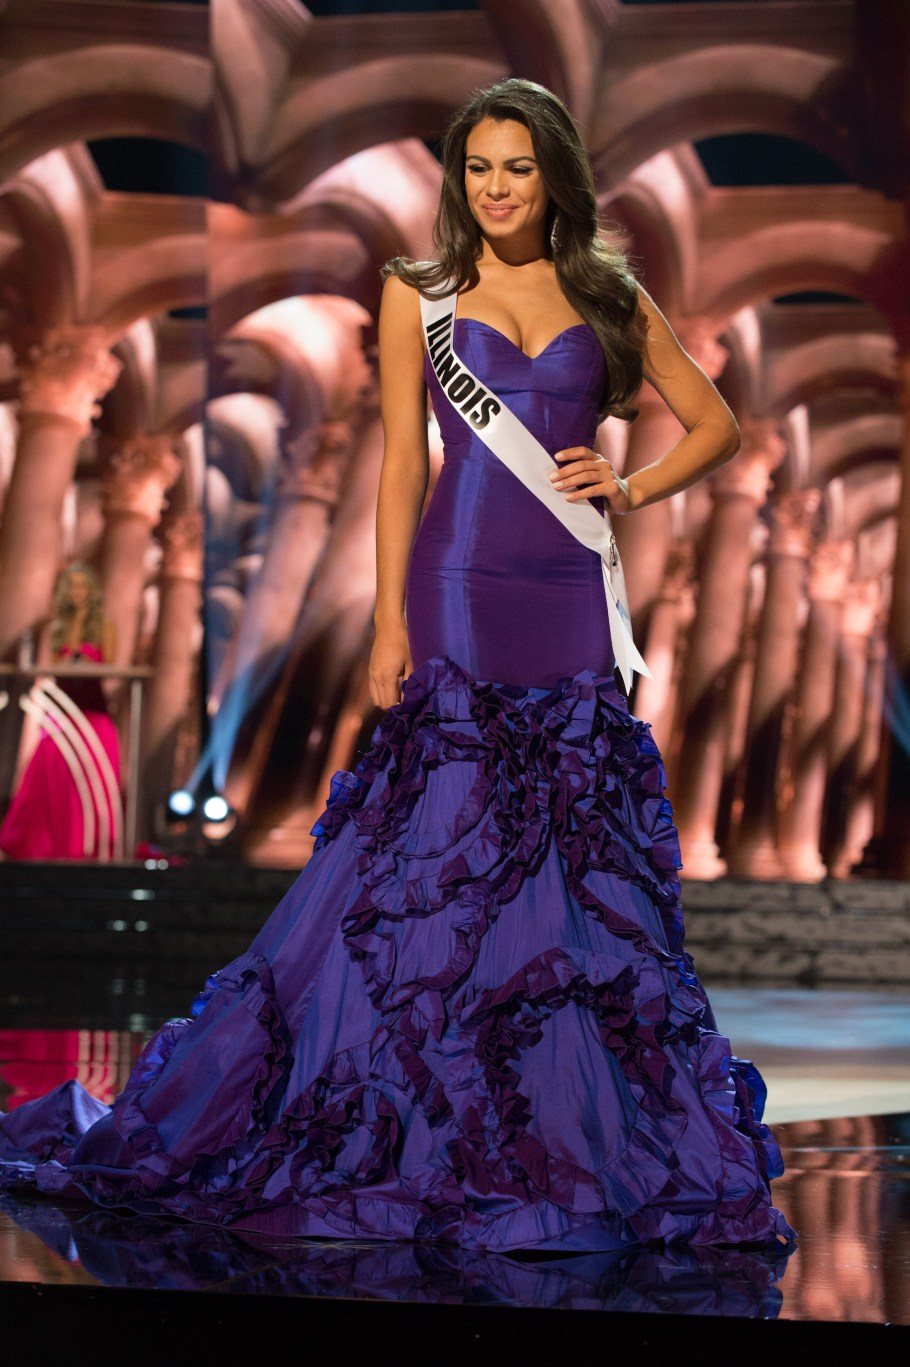 Zena Malak, Miss Illinois USA 2016 is one of the worst in Best and the worst Evening Gowns at Miss USA 2016 Preliminary show